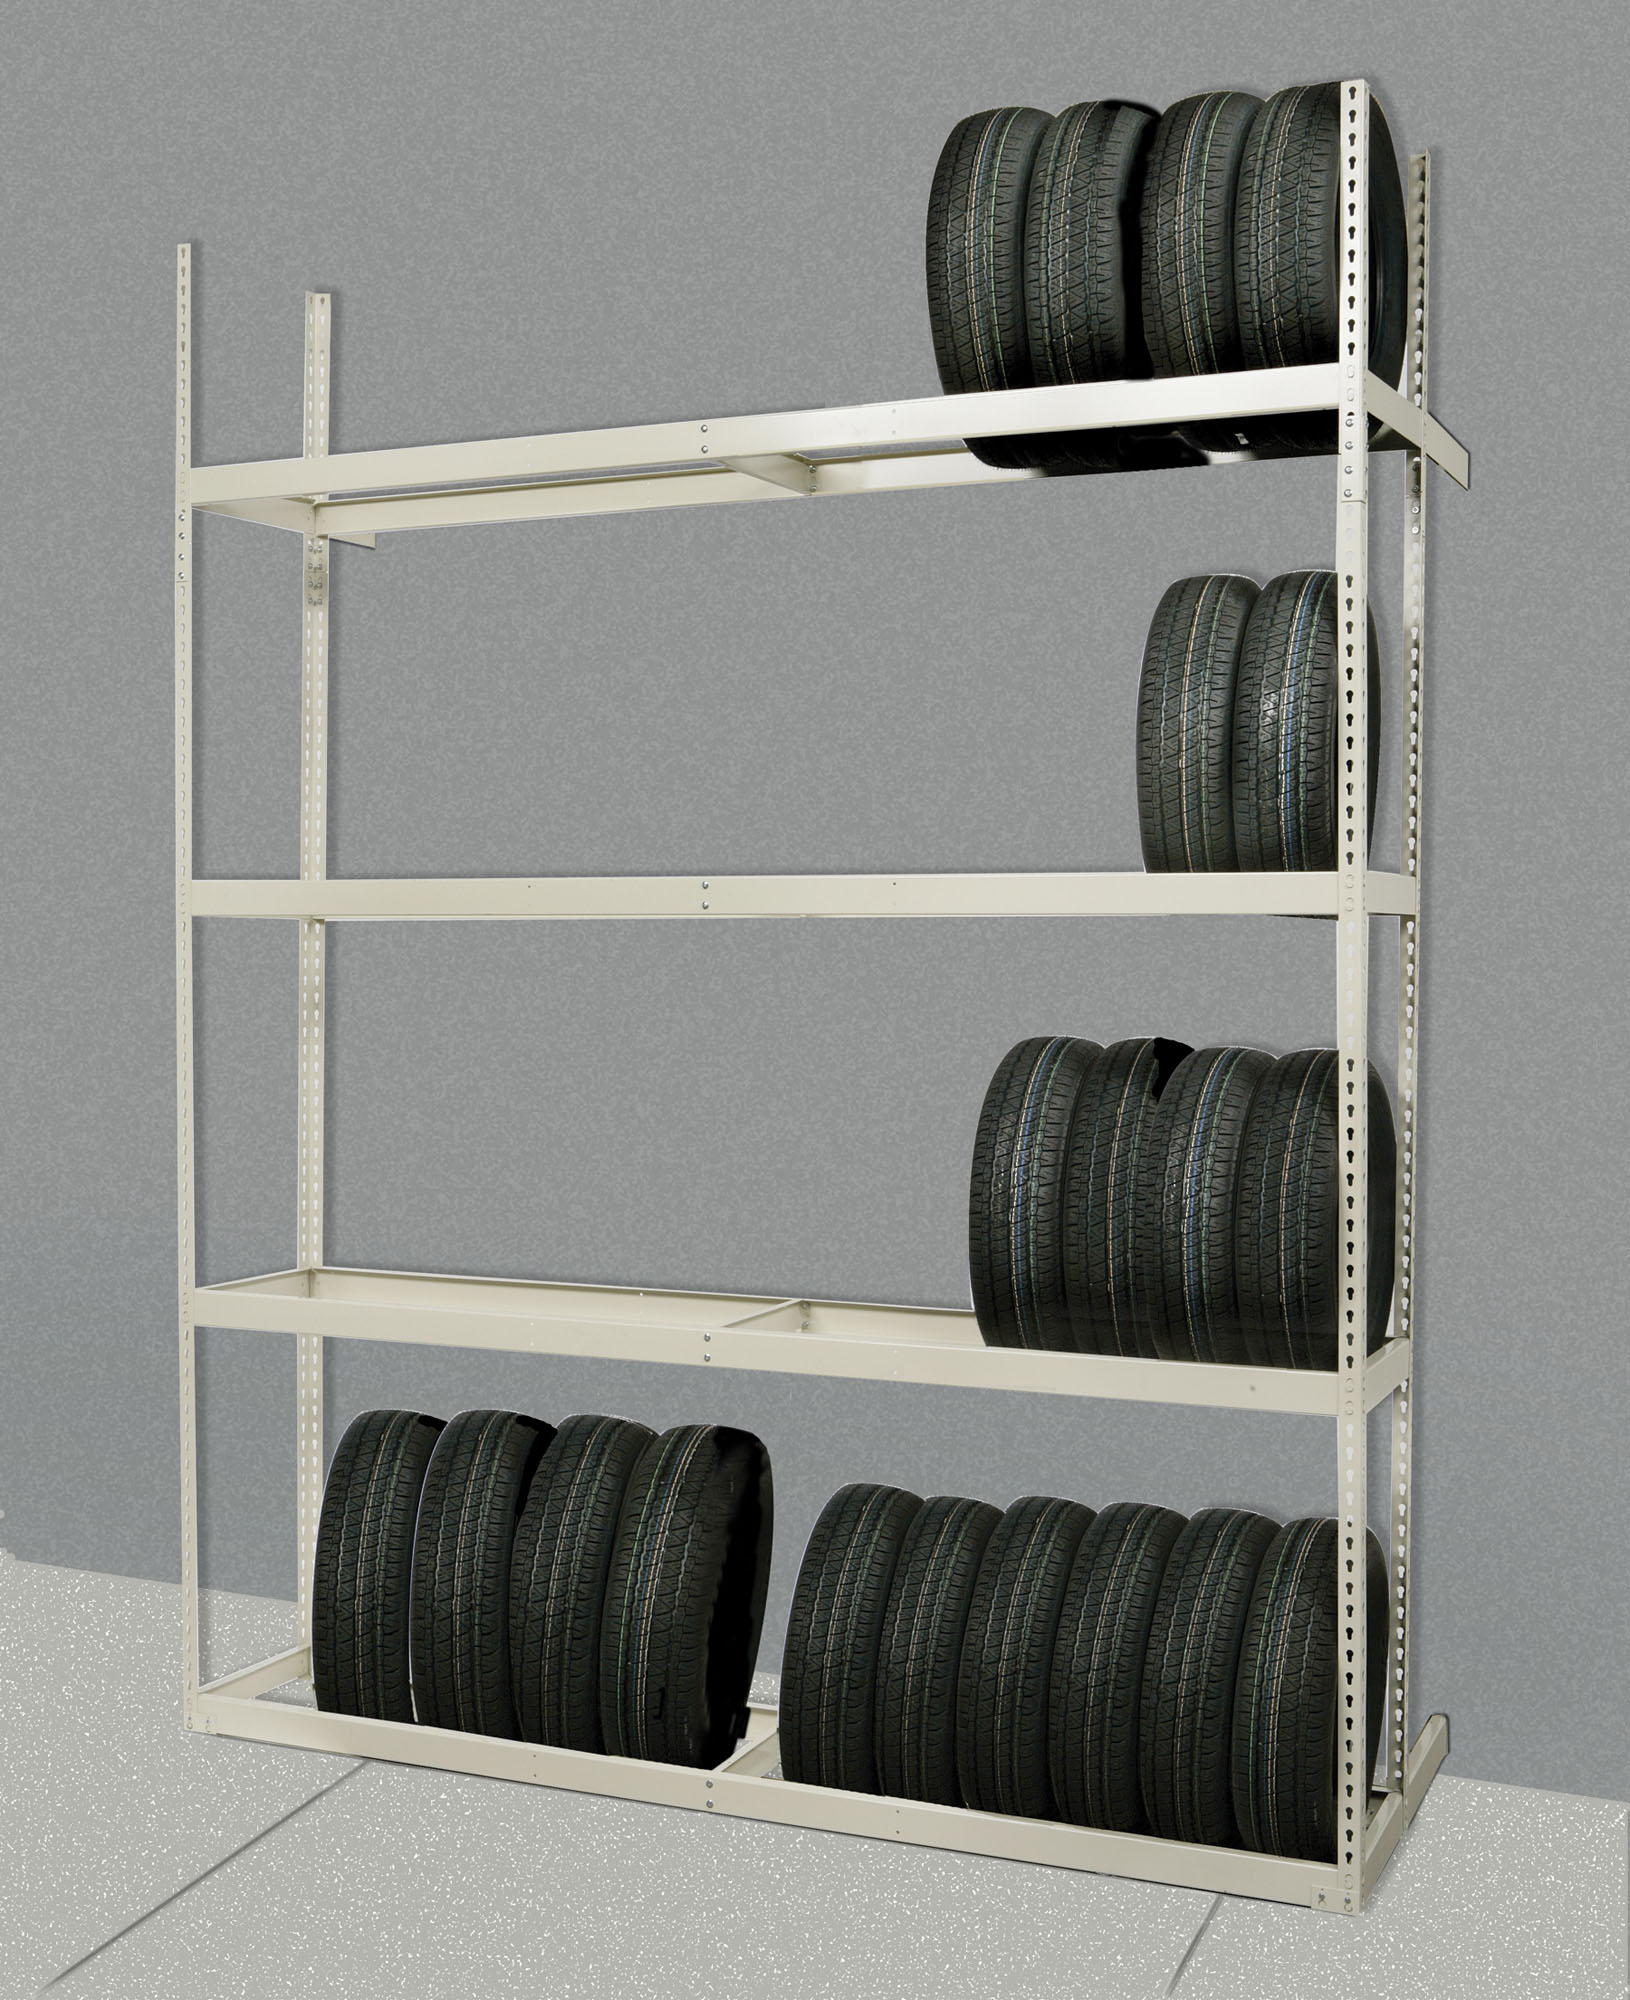 Hallowell Rivetwell Tire Storage Rack, Model TSS6021120-4S